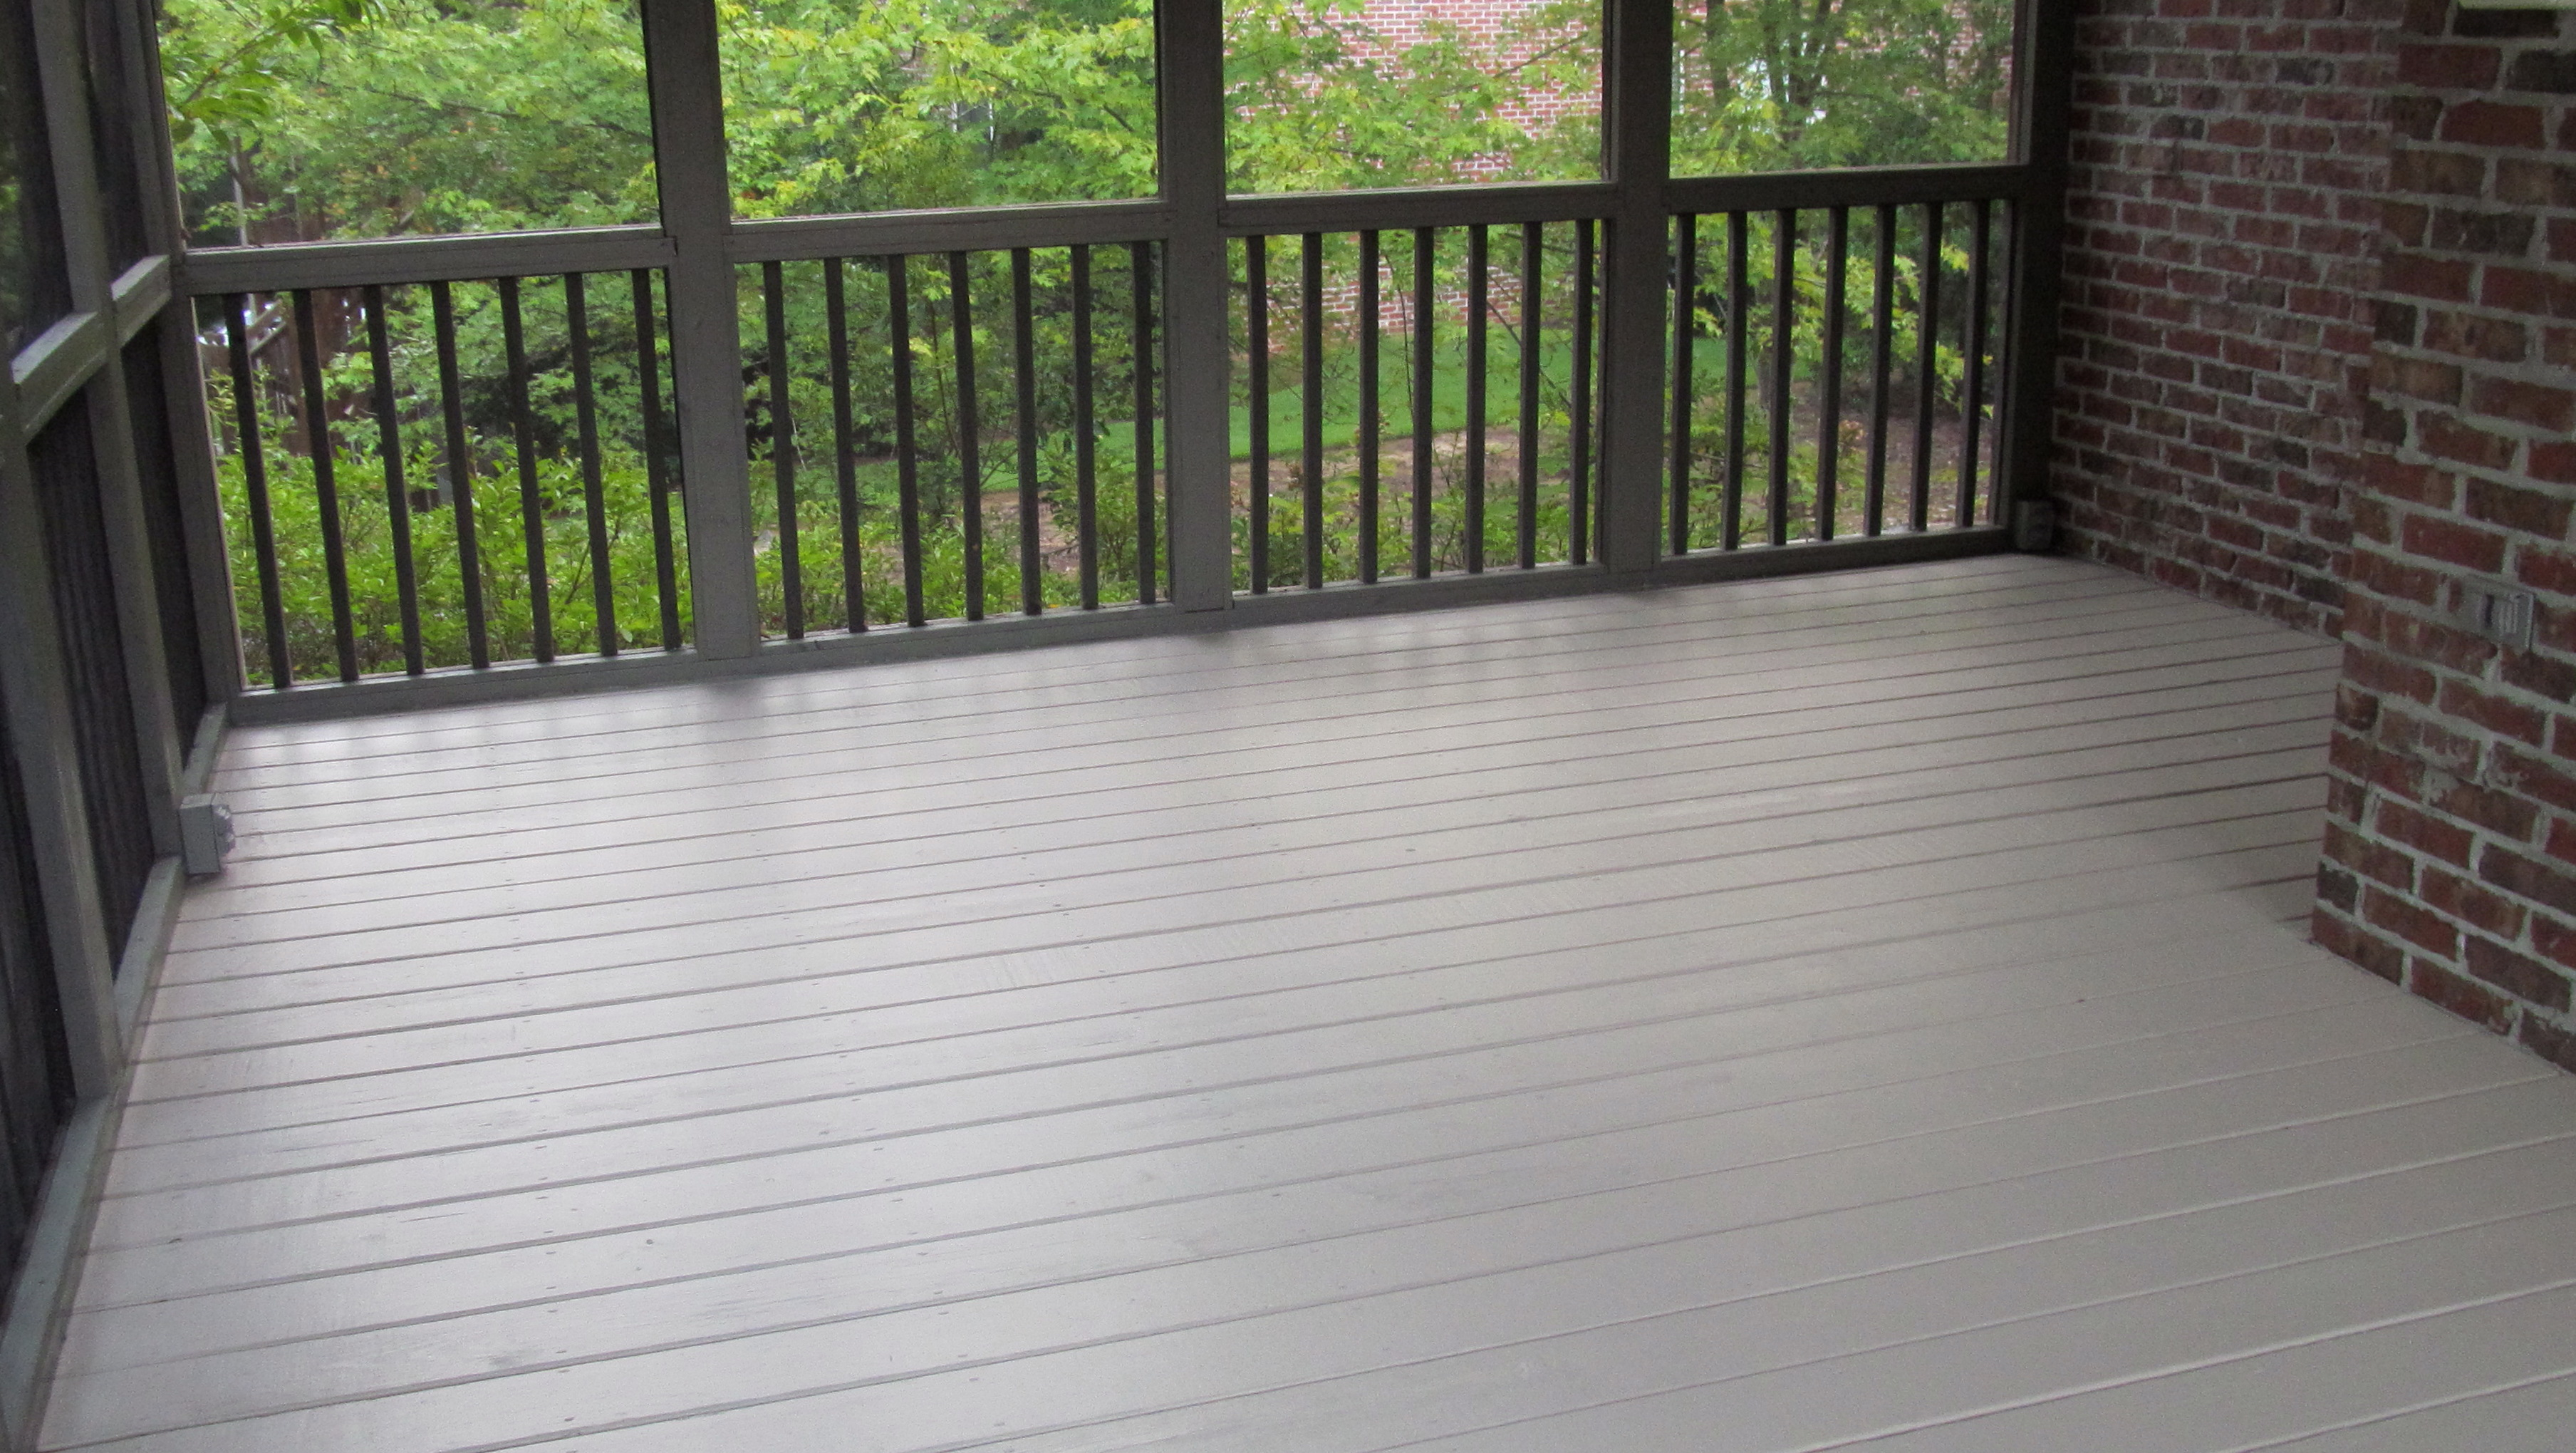 Behr Porch And Patio Floor Paint Review Home Design Ideas Jpg 3616x2039 Behr  Porch And Floor